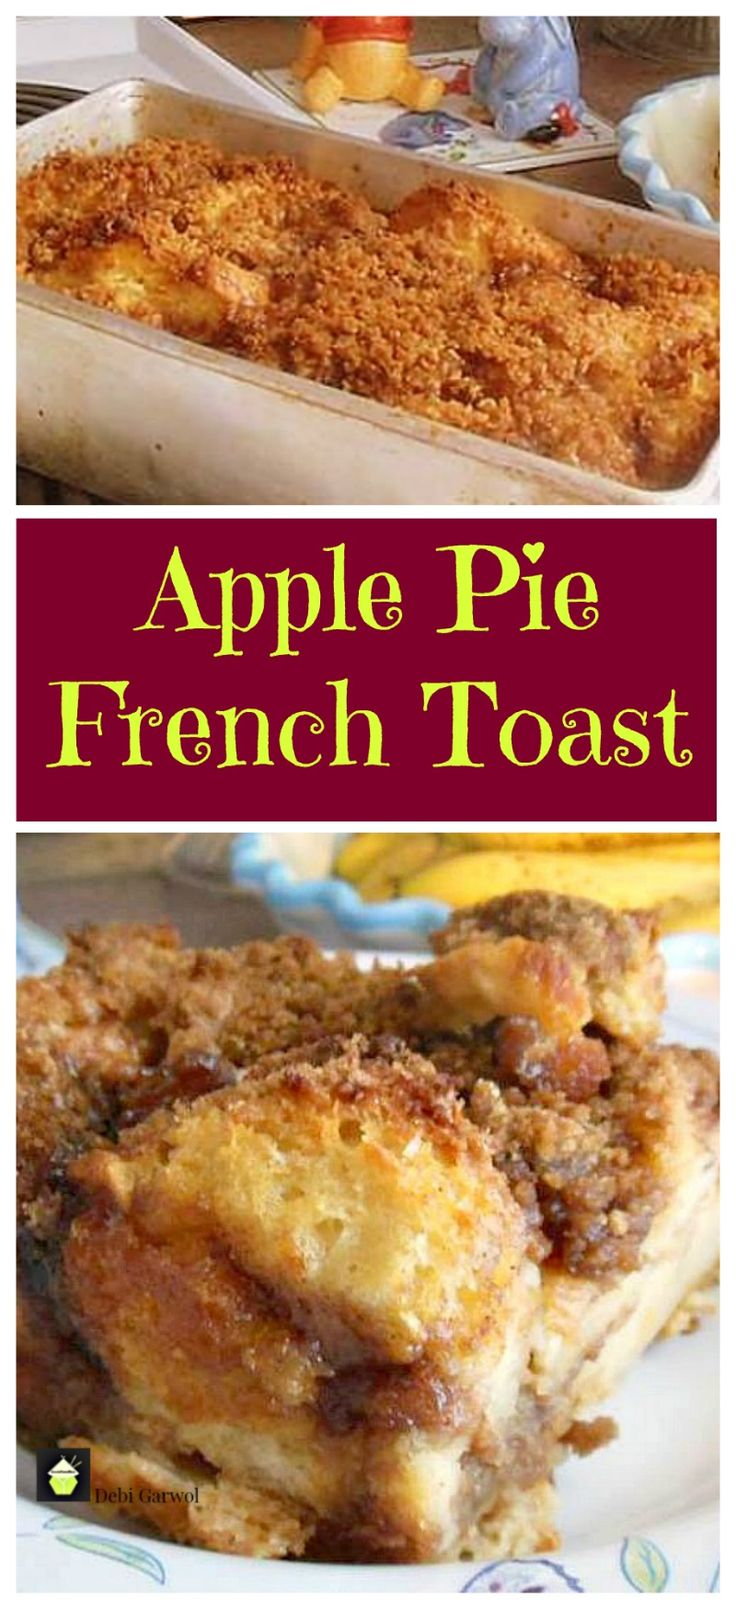 Apple Pie French Toast. A great easy and delicious recipe, serve hot or cold, it's yummy!